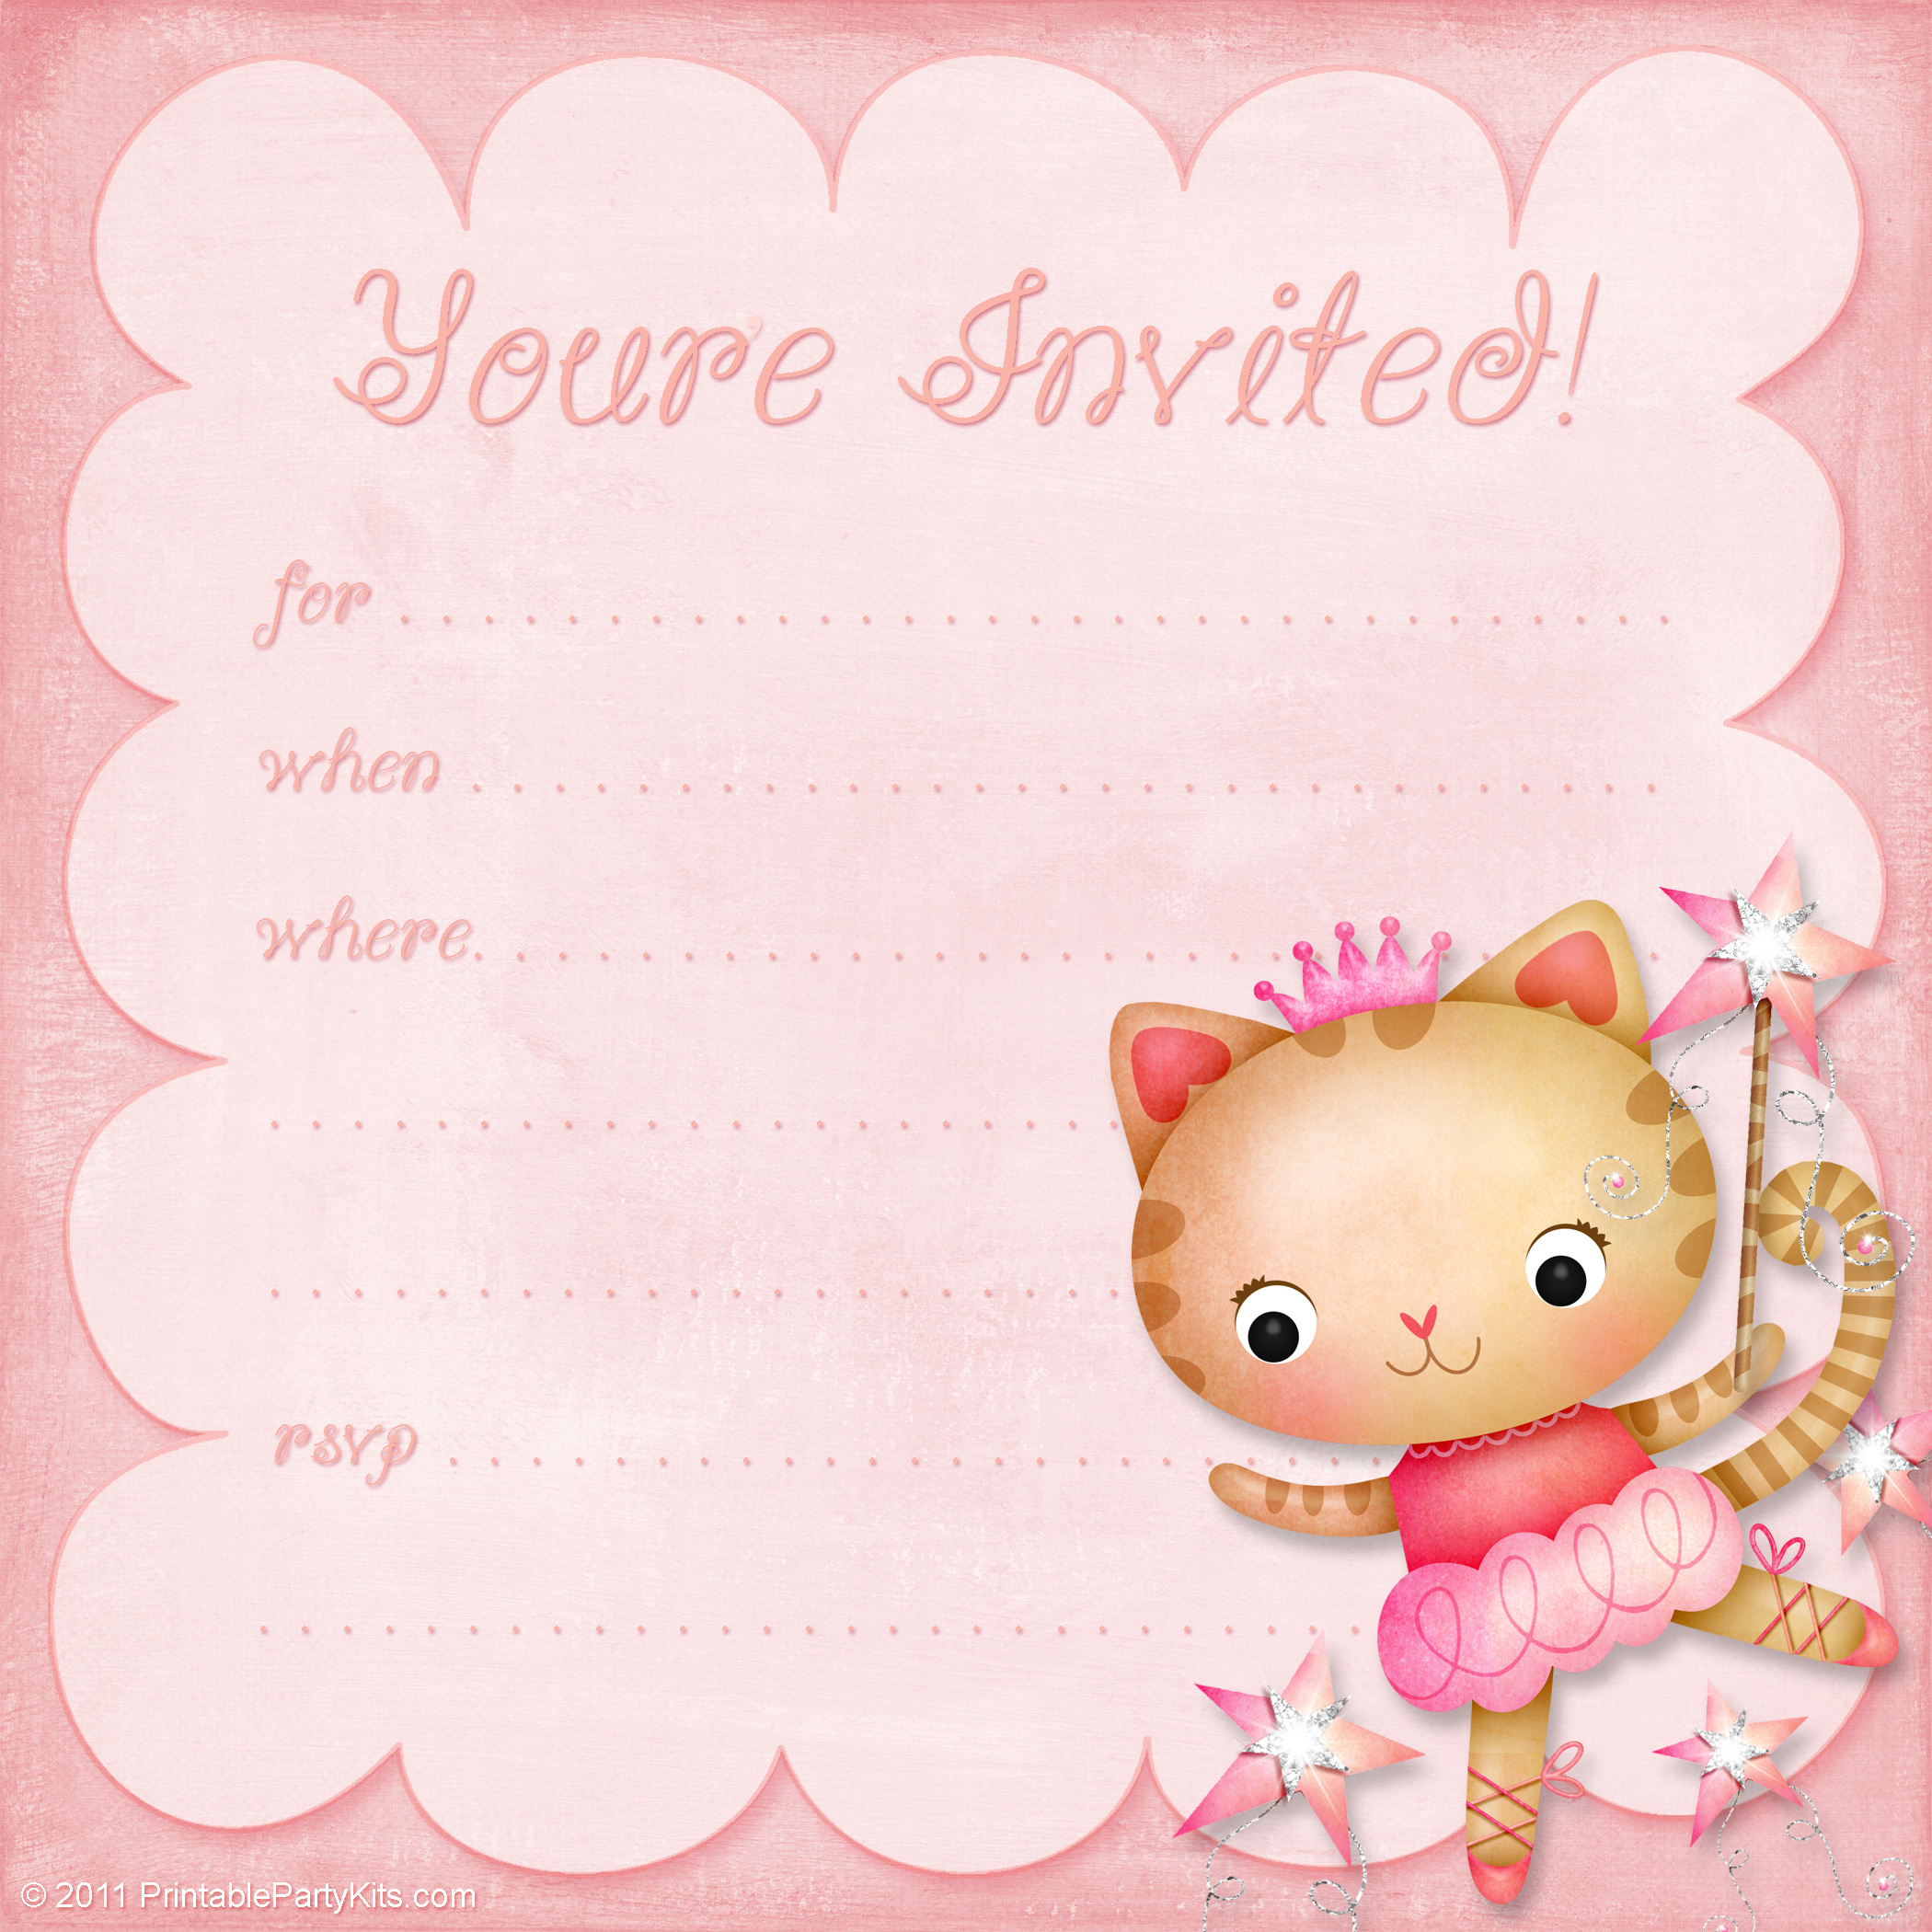 free birthday invitation card templates for word ; free-birthday-party-invitation-templates-for-word-make-your-nice-looking-Party-invitations-much-more-awesome-18